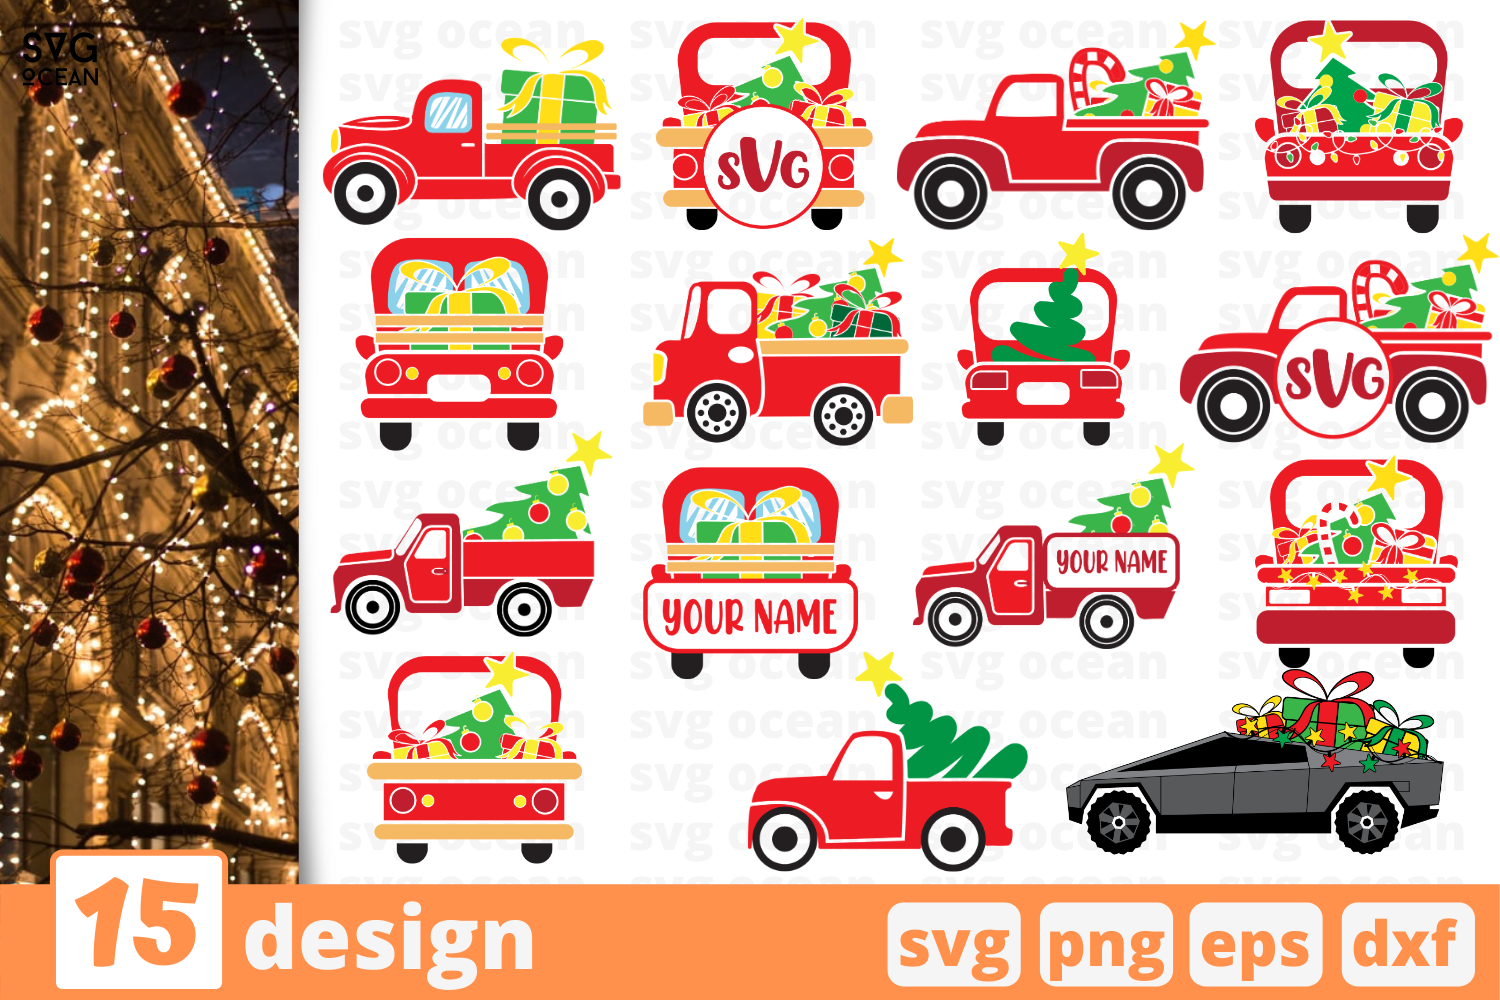 Christmas Truck Svg Bundle Graphic By Svgocean Creative Fabrica